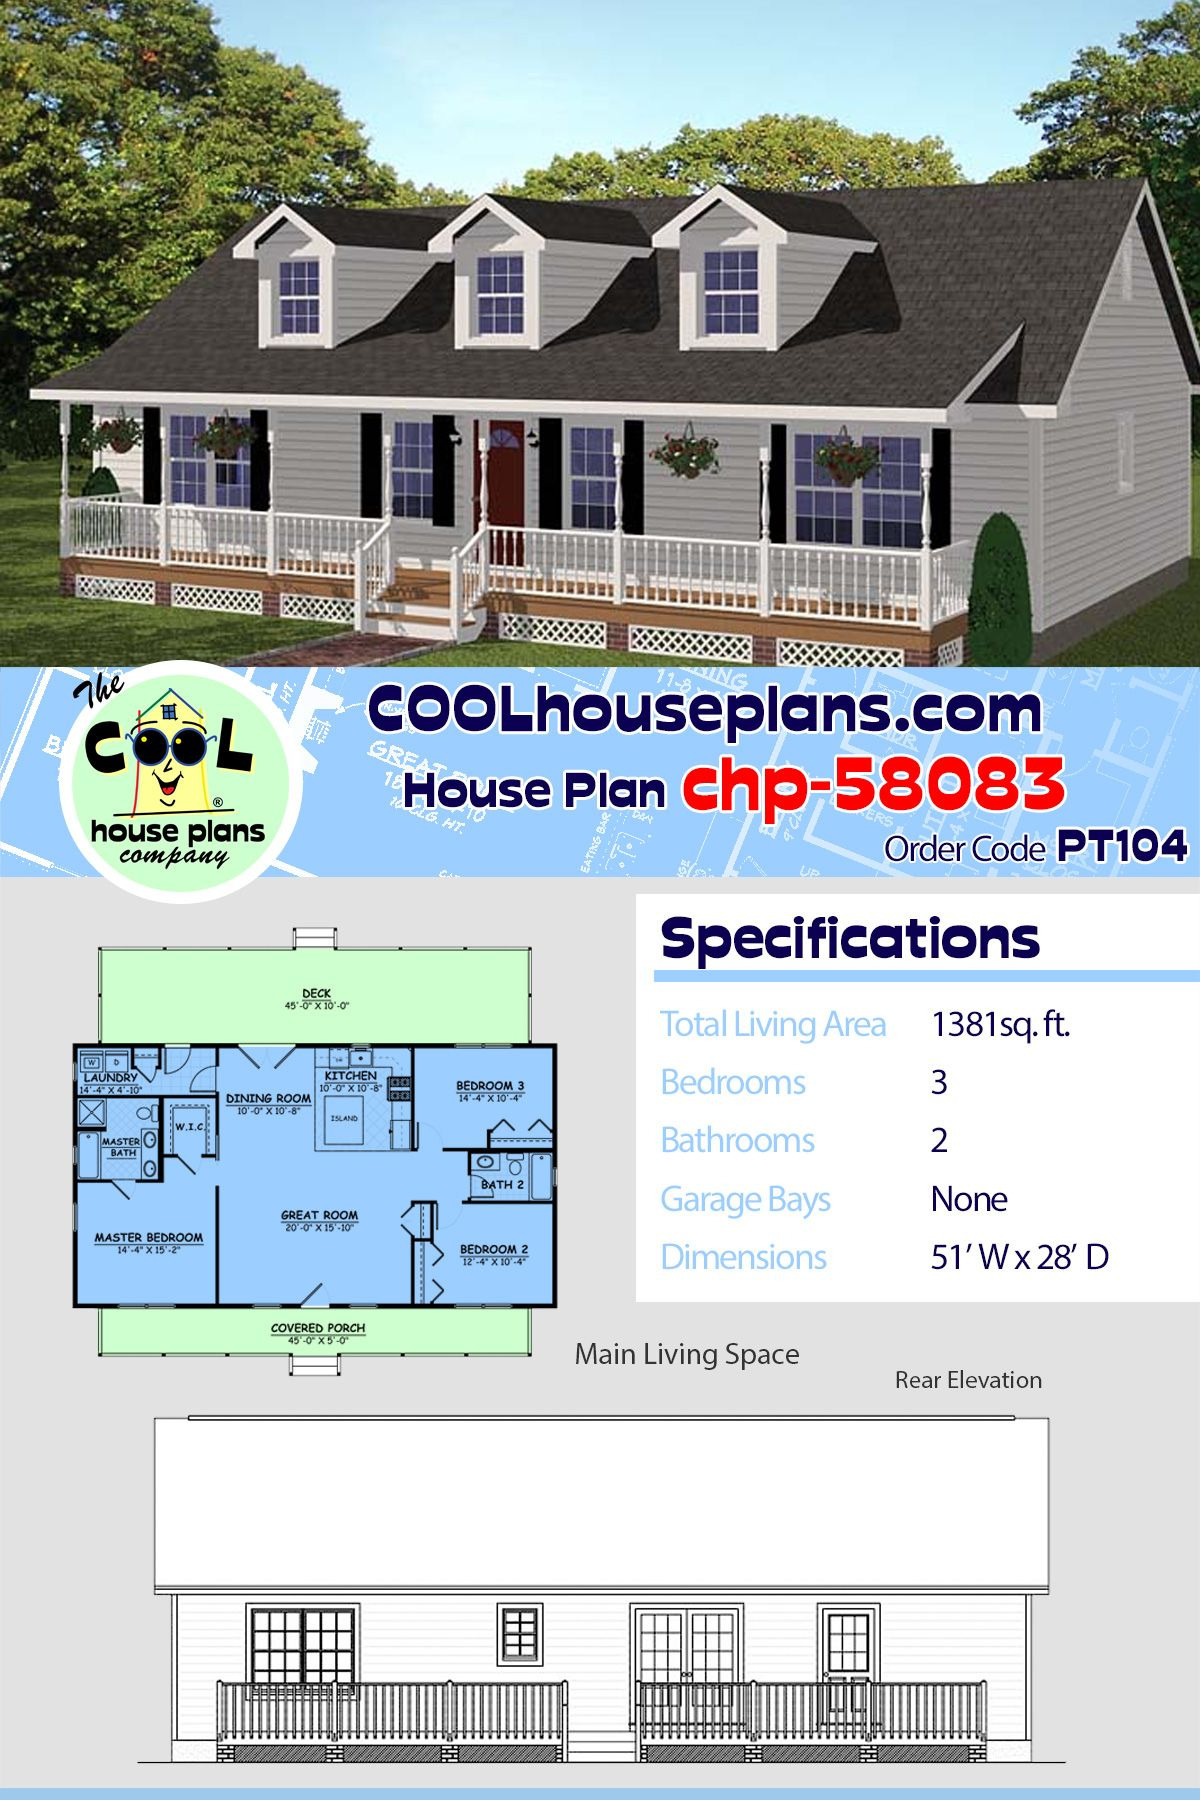 Best Ranch House Plans Ever Elegant so Here It is the 1 Best Selling Ranch House Plan by